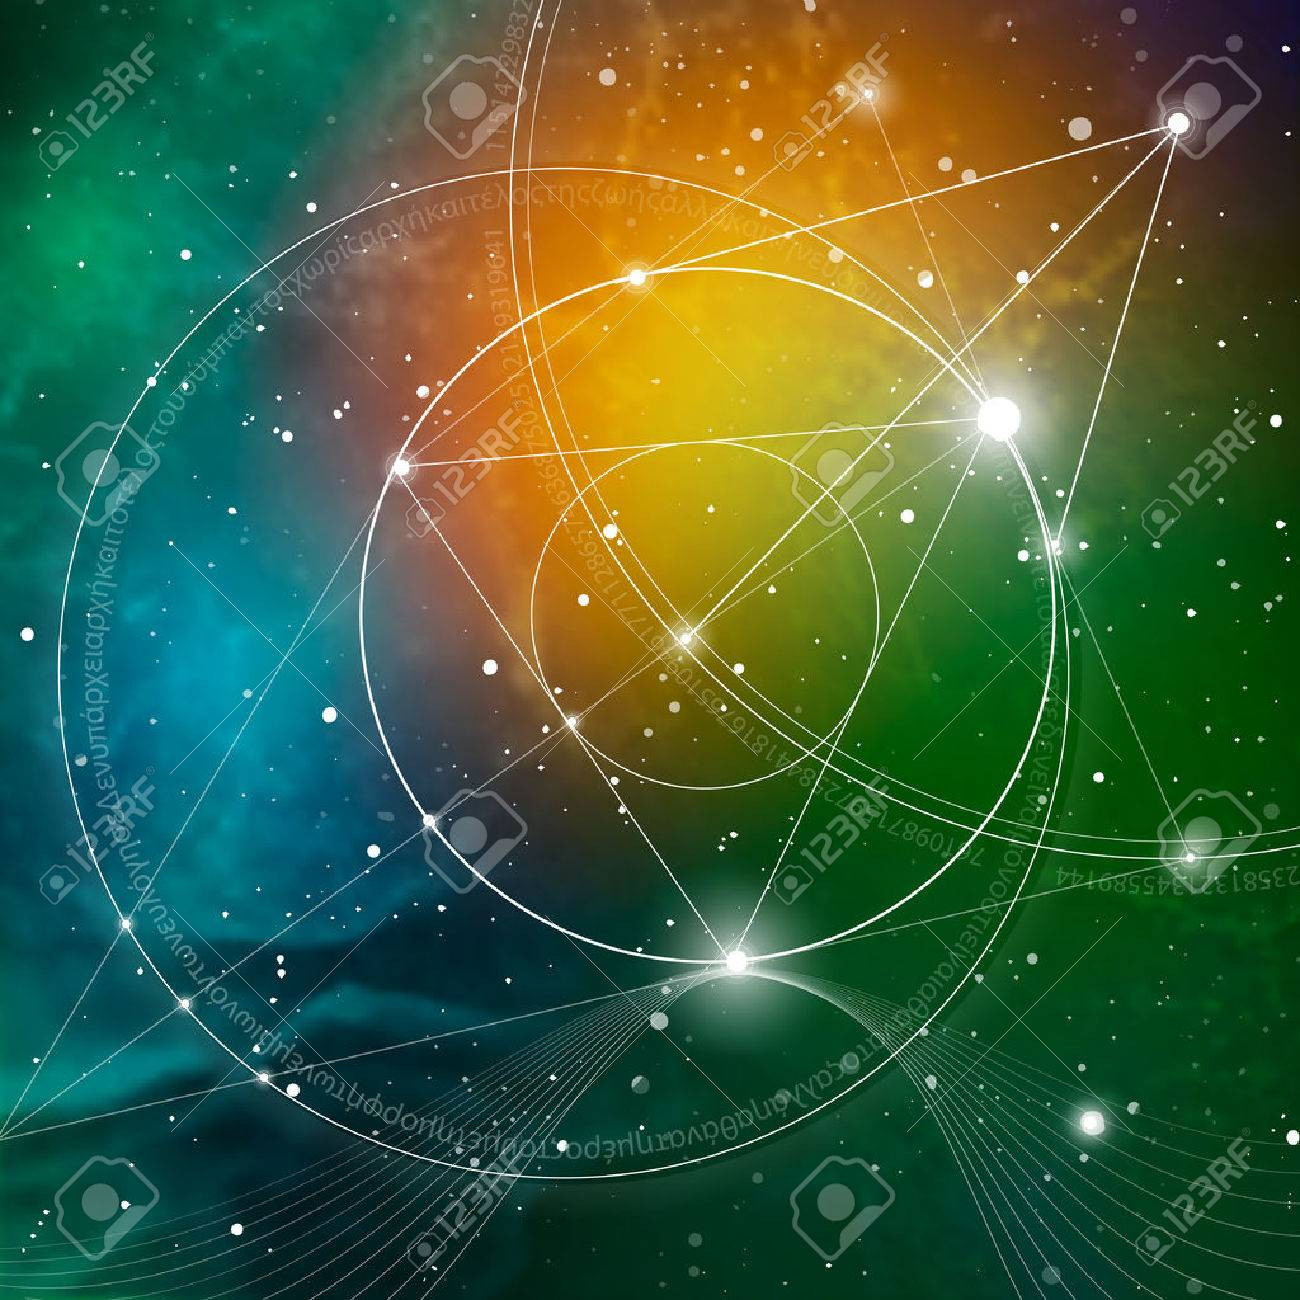 Sacred geometry. Mathematics, nature, and spirituality in Space. The formula of nature. There is no beginning and no end of the Universe, and no beginning and no end of the Life and the Bliss. - 67021296